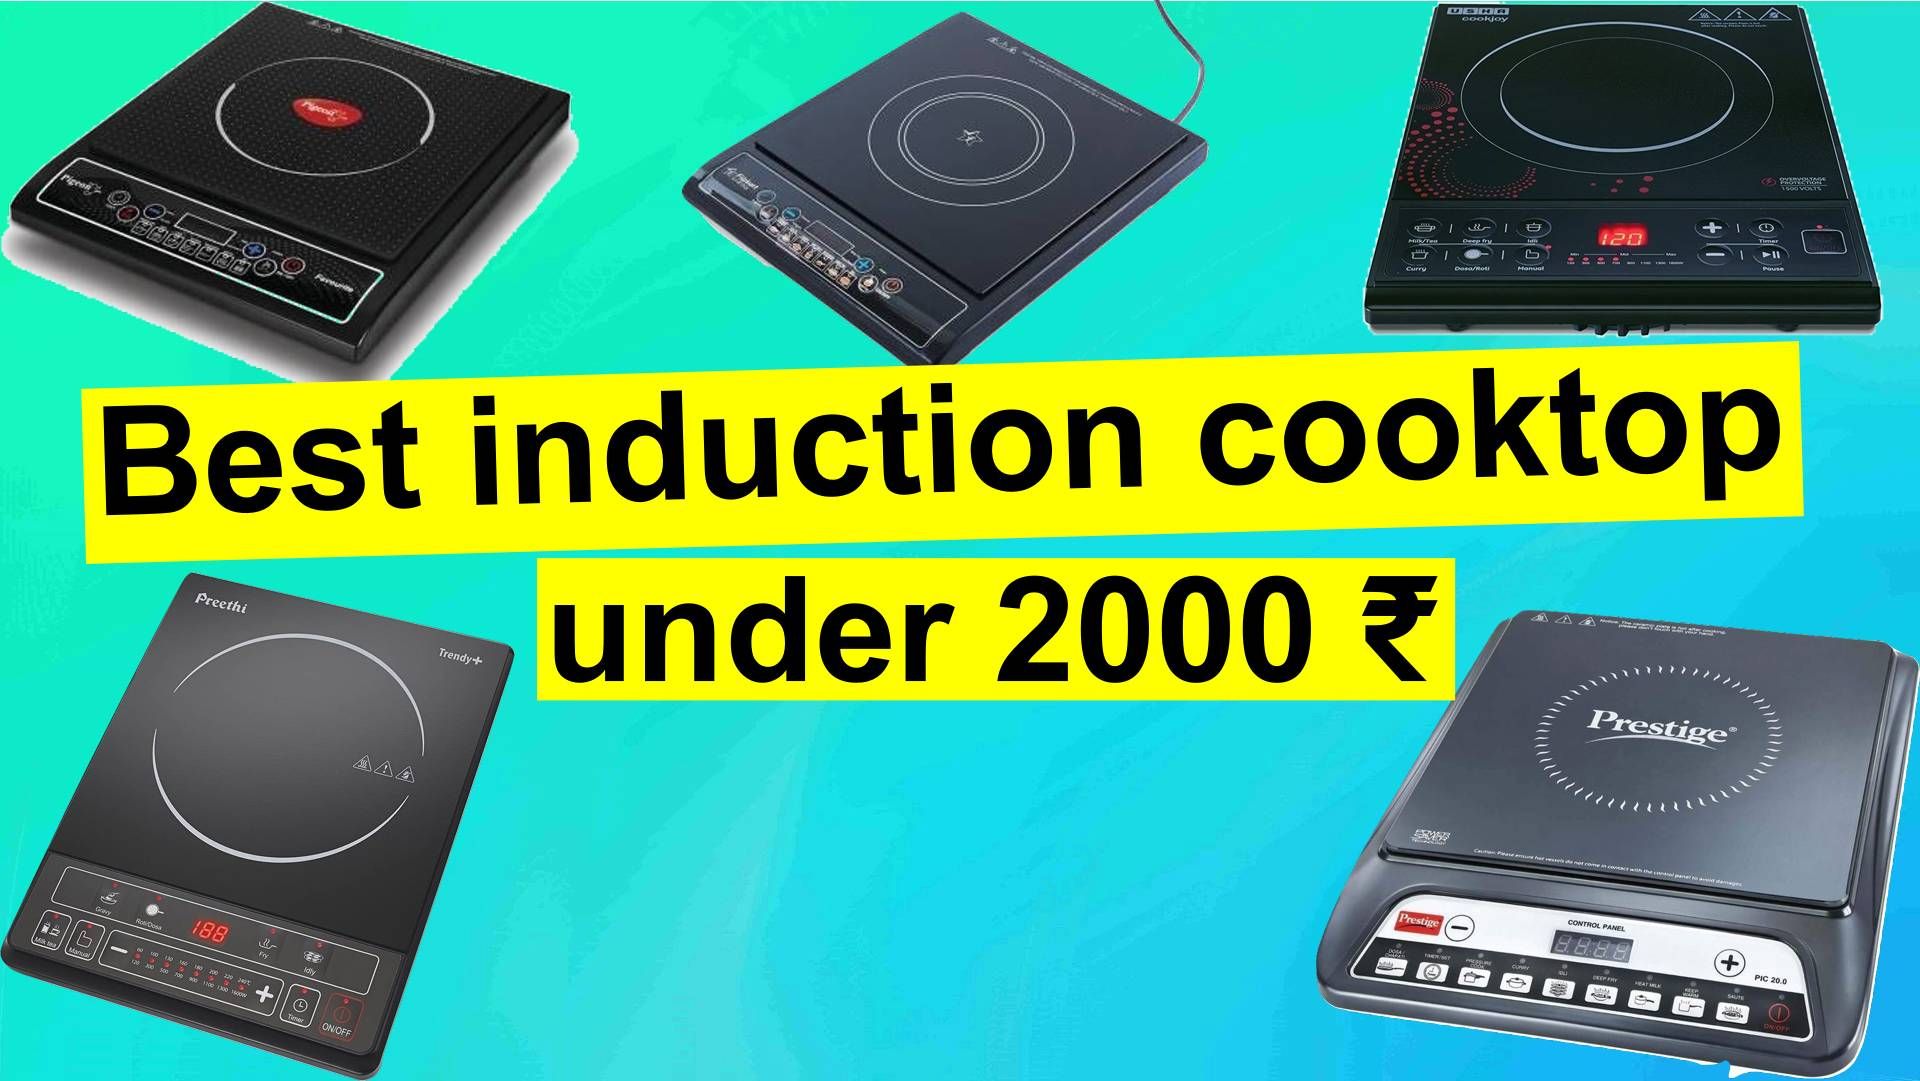 Best induction cooktop under Rs 2000 in India